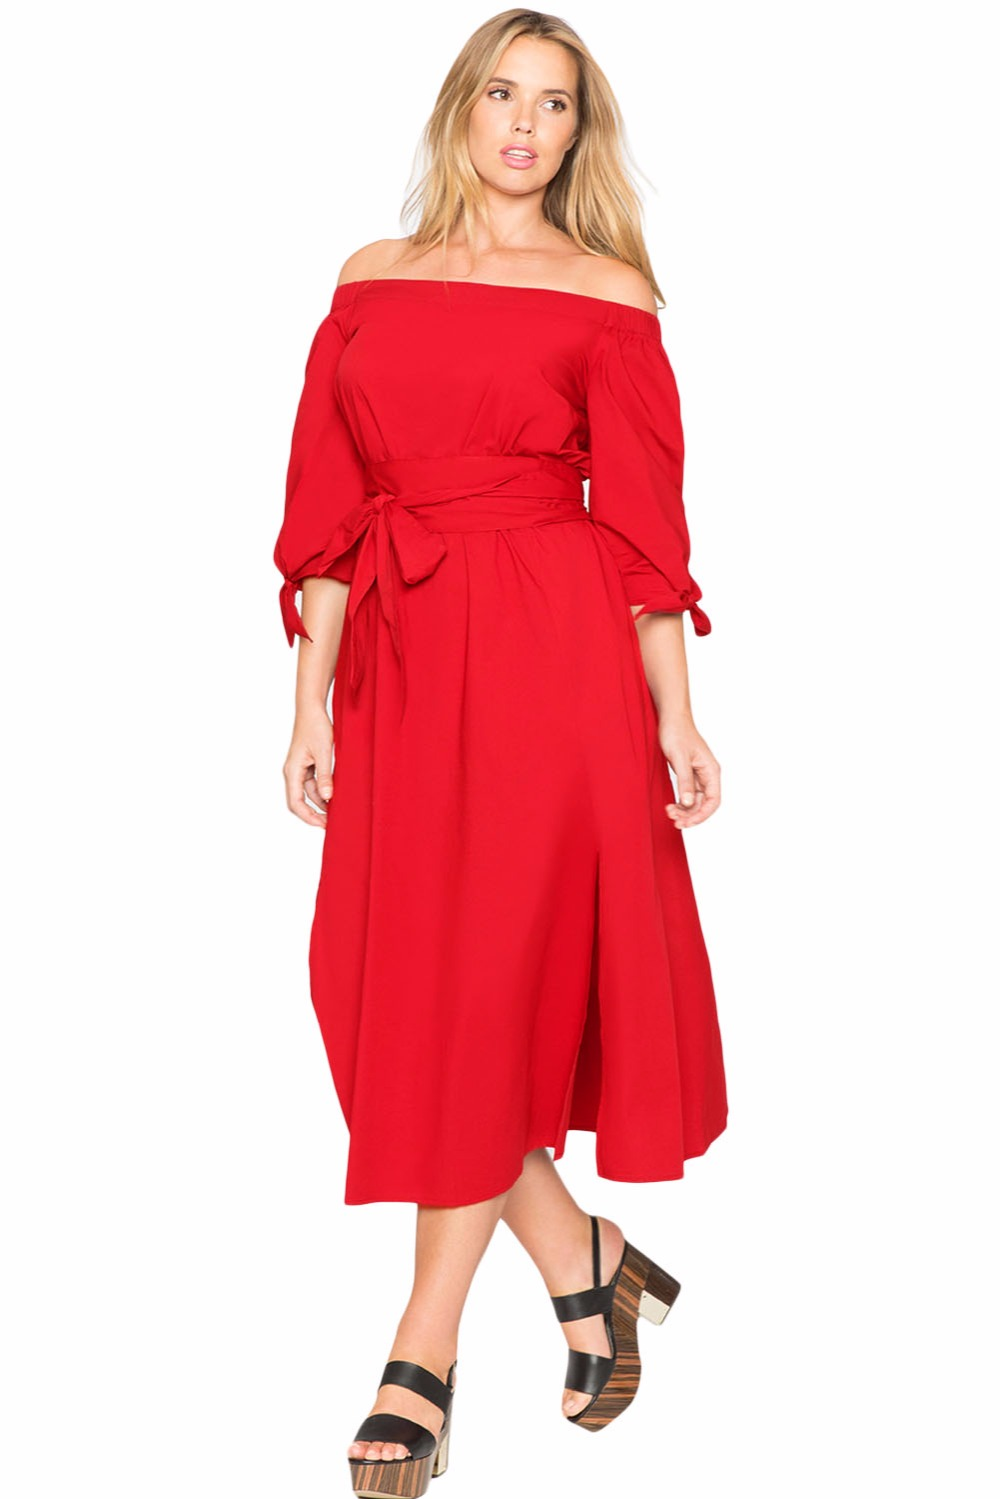 plus size clothes for women cheap online buy wholesale fashion for curvy women from china 1117